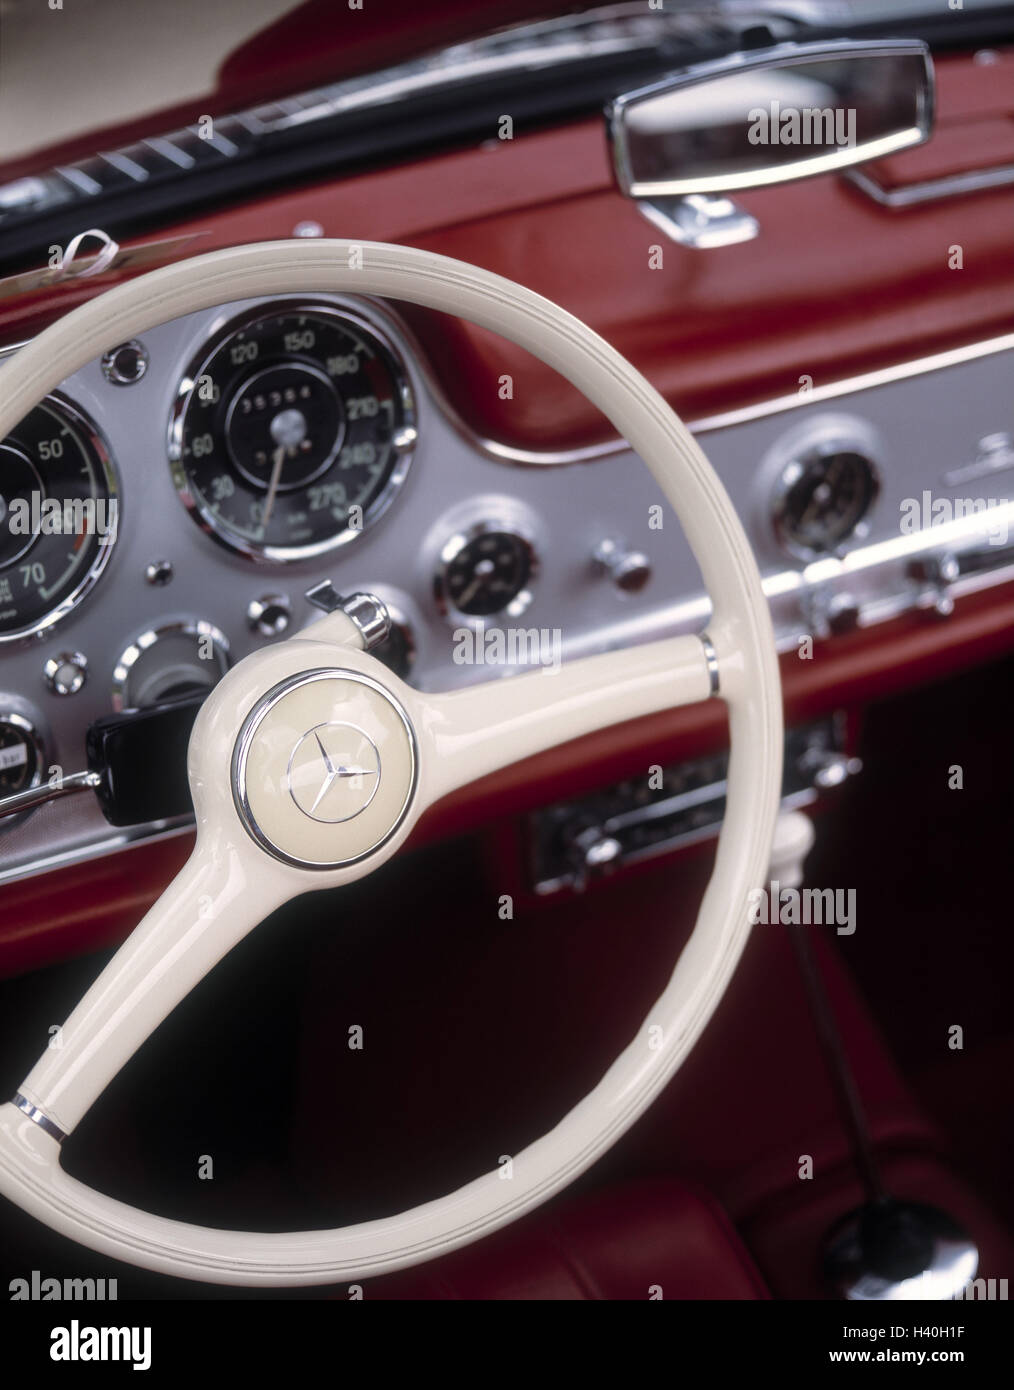 Old Fashioned Car Speedometer Stock Photos & Old Fashioned Car ...